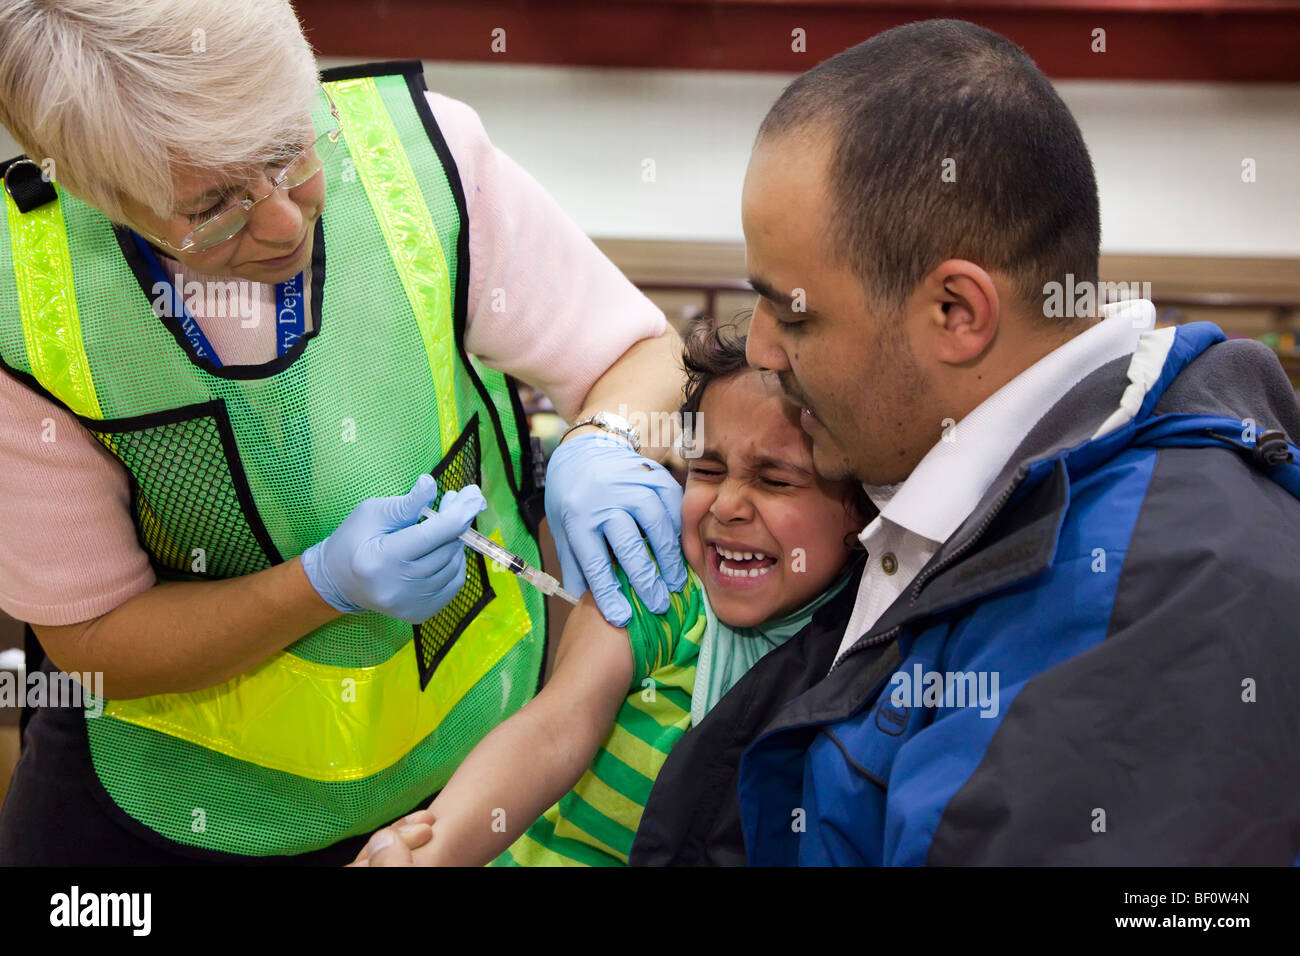 Hamtramck, Michigan - A health care worker vaccinates a girl against the H1N1 swine flu. - Stock Image